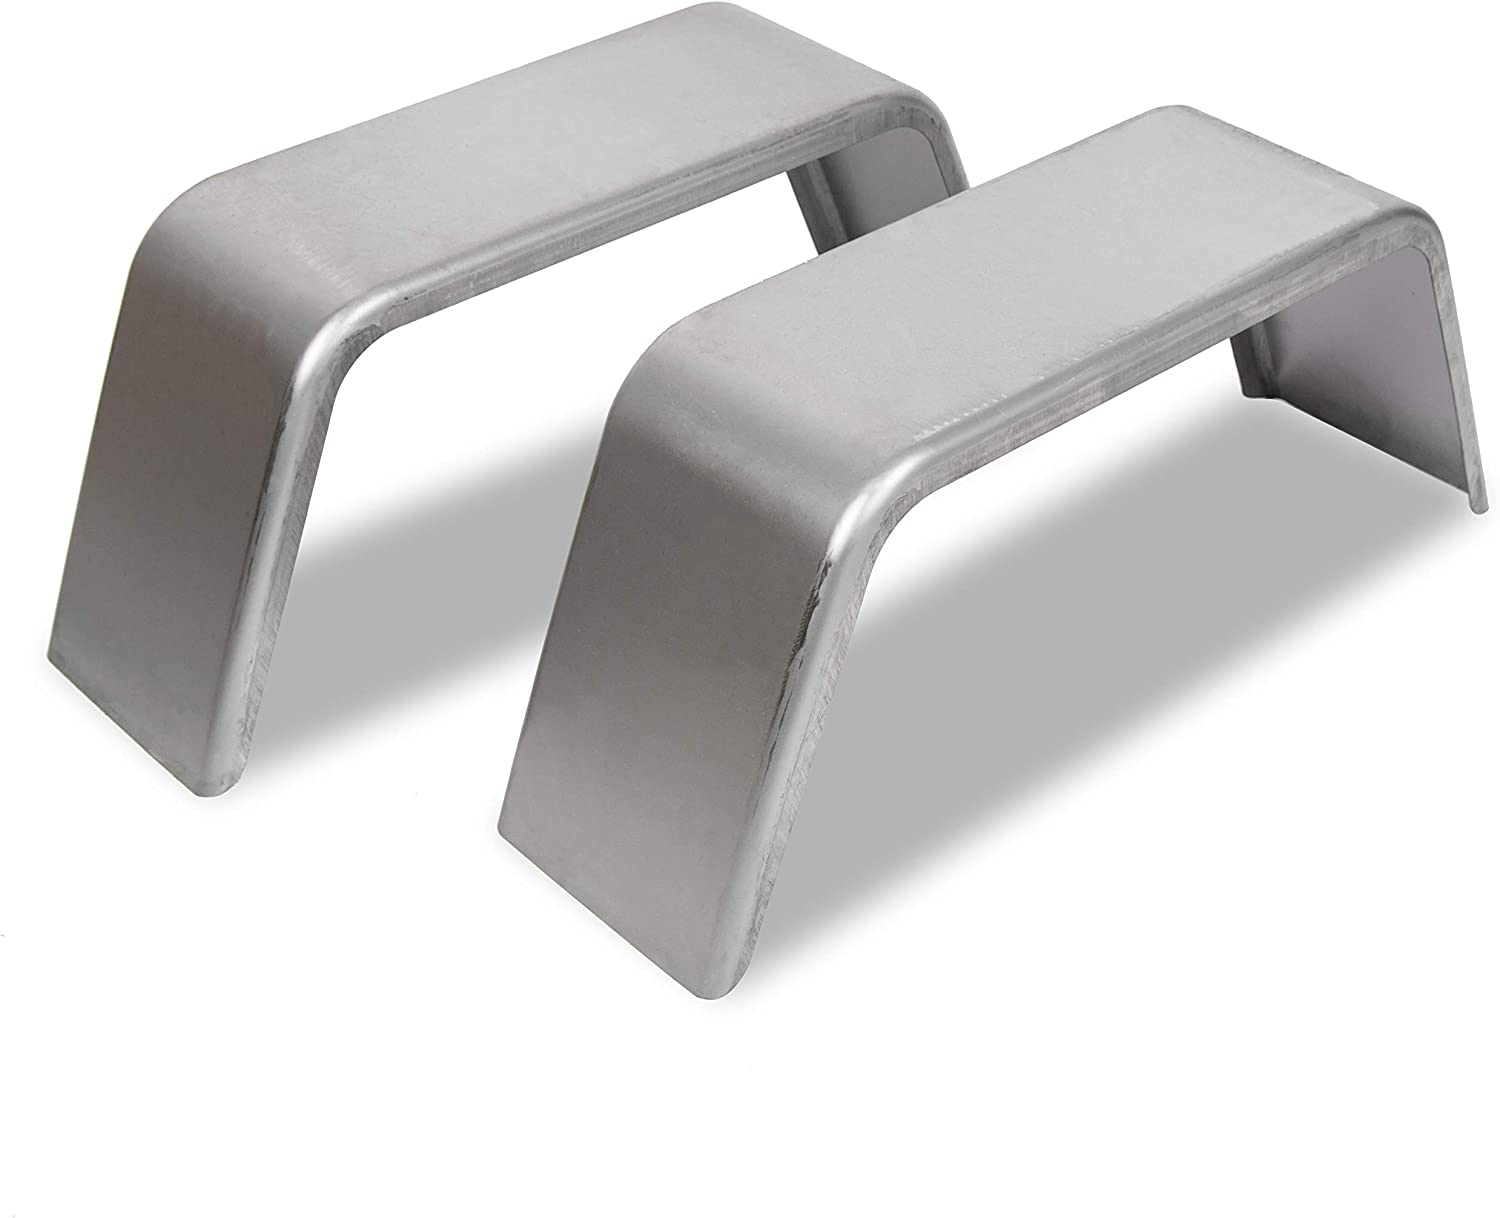 HECASA Square Axel Trailer Boat Fenders Fit 14 inch-16 inch Wheels